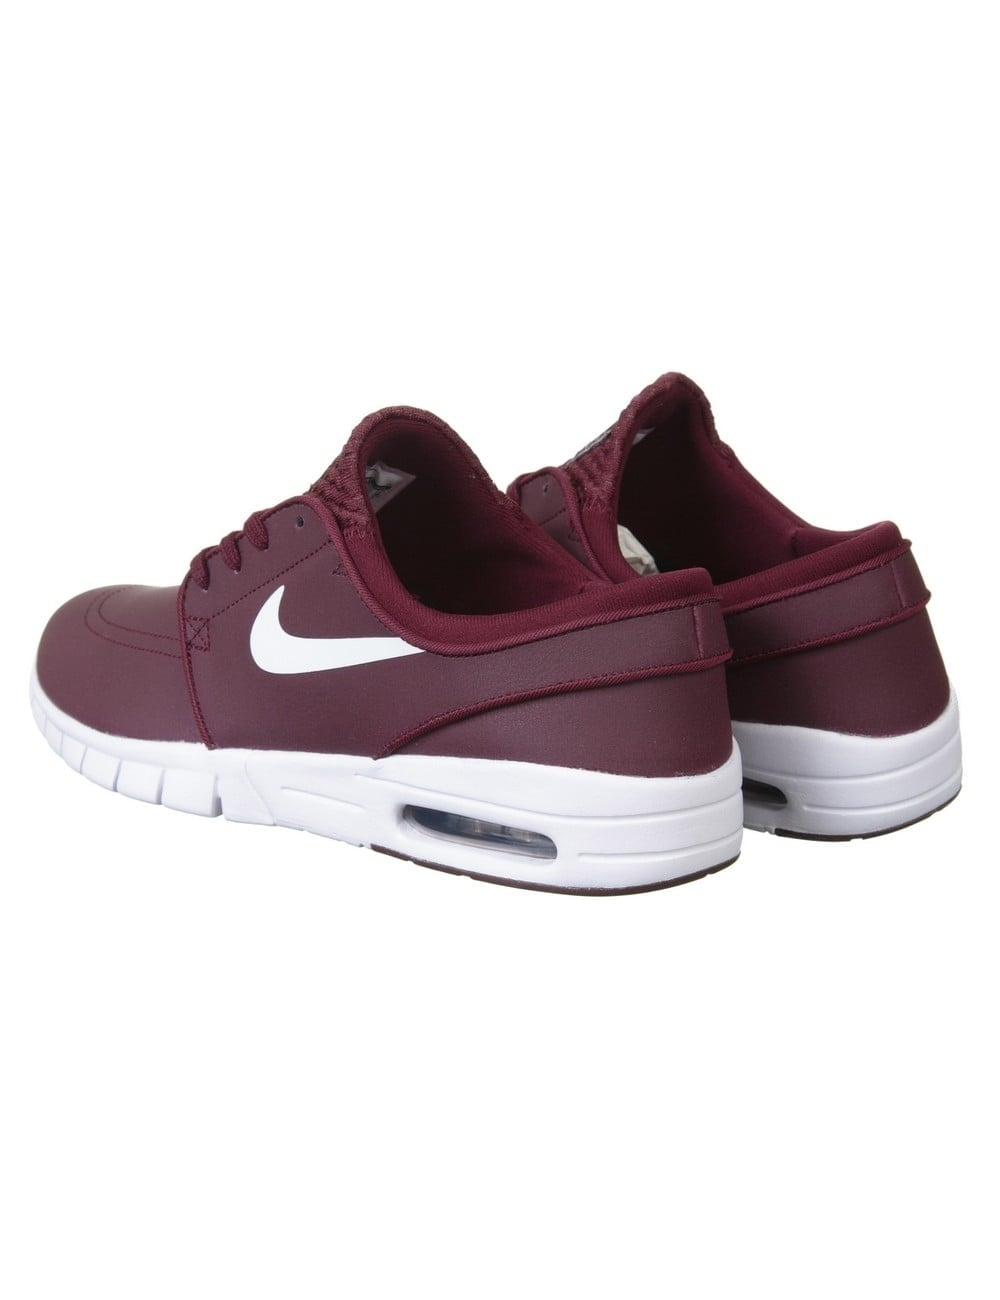 Nike SB Stefan Janoski Max Shoes - Night Maroon White - Footwear ... 01039a231